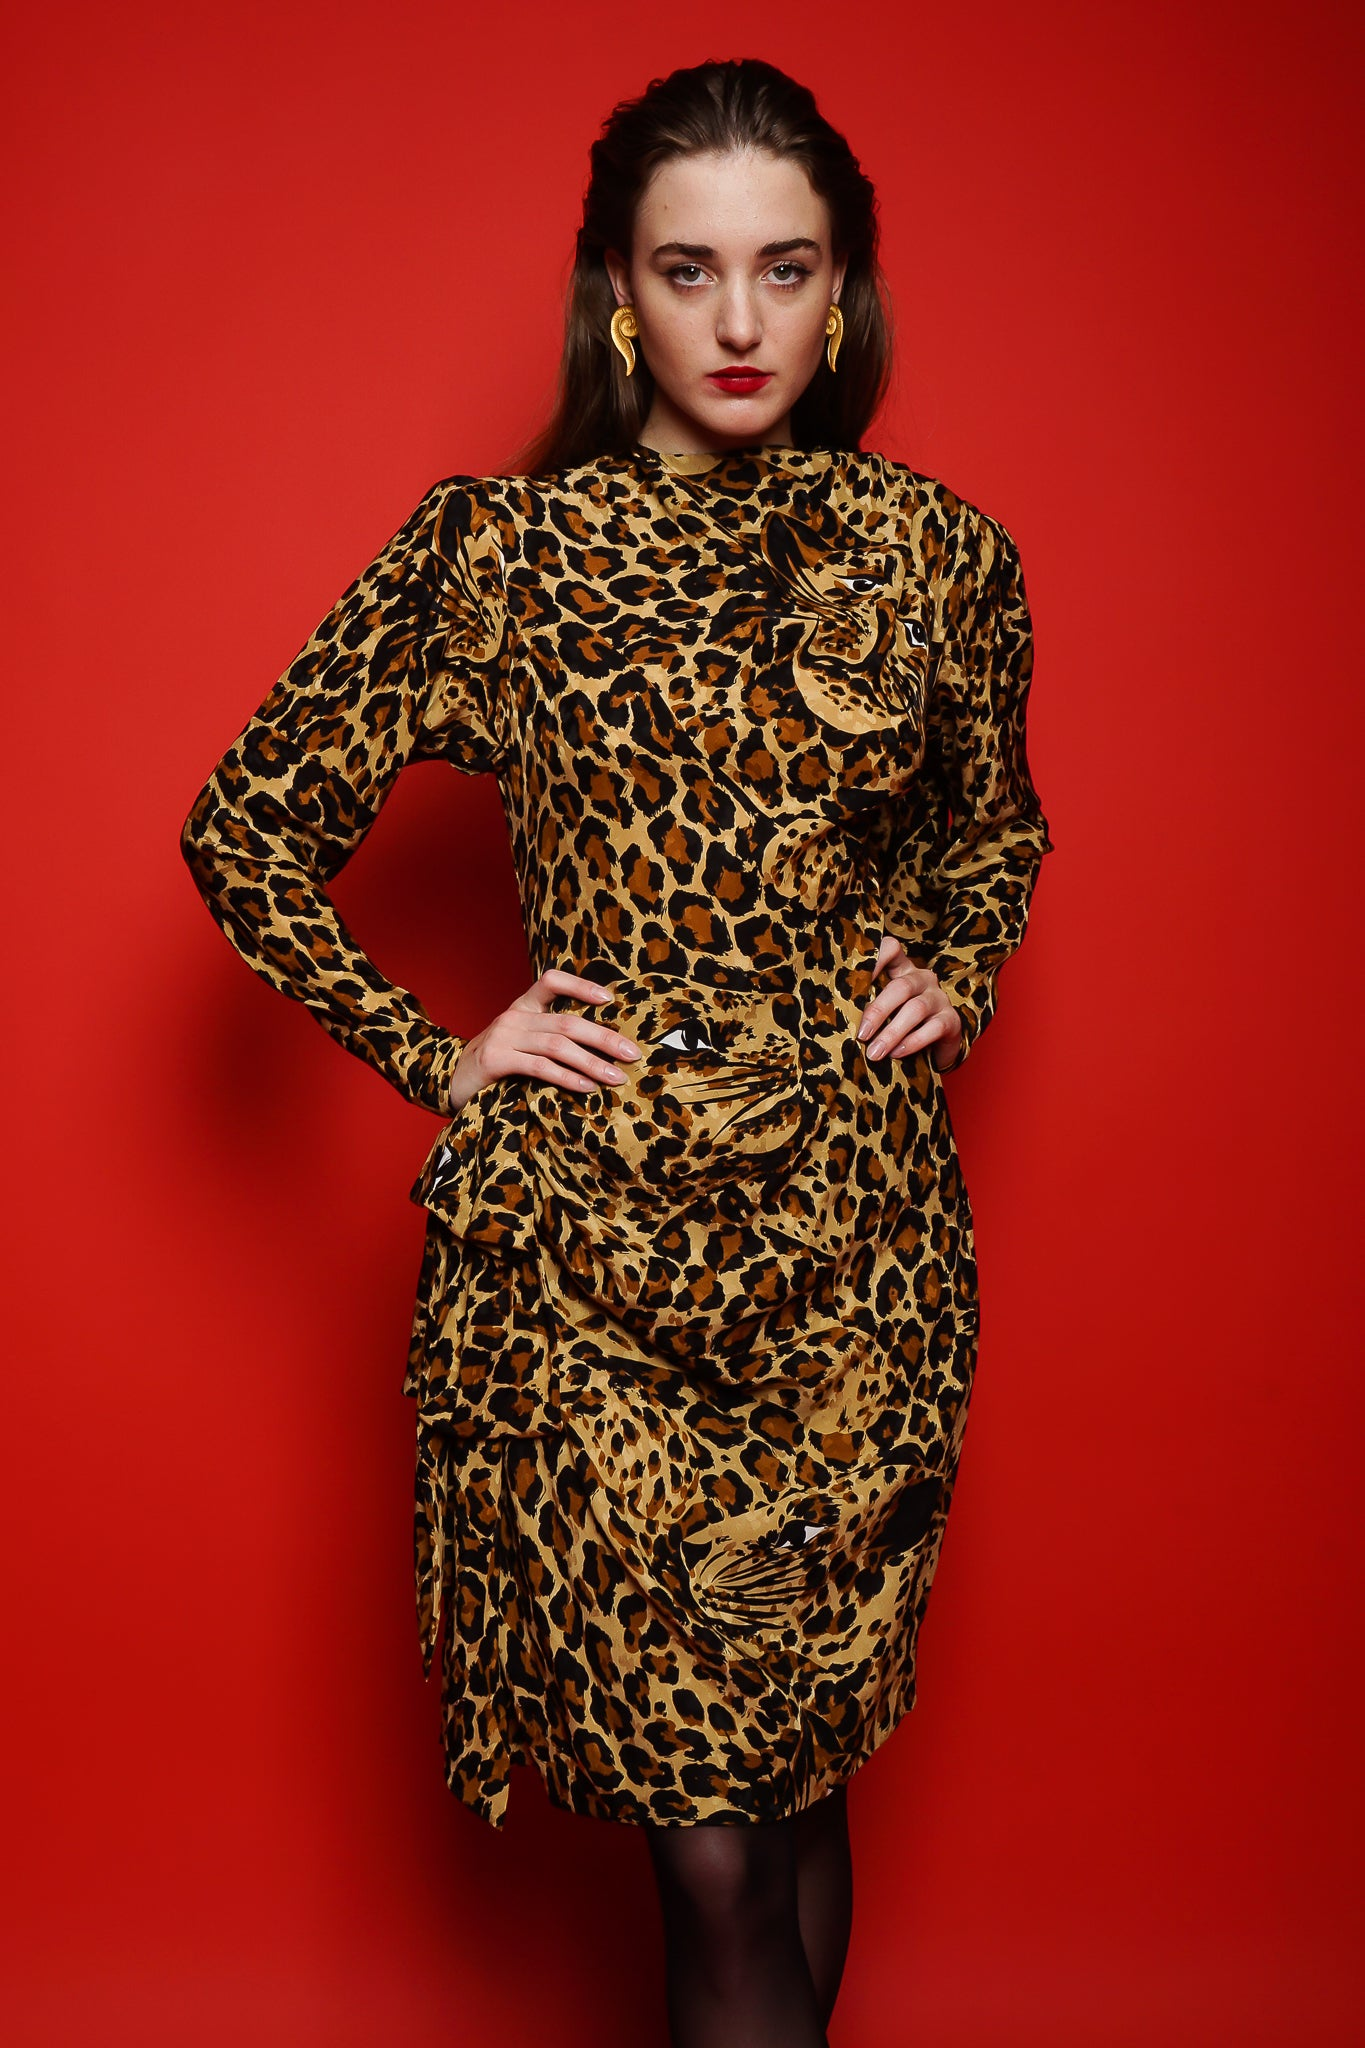 Girl in YSL Yves Saint Laurent Leopard Scarf Dress on red background at Recess Los Angeles